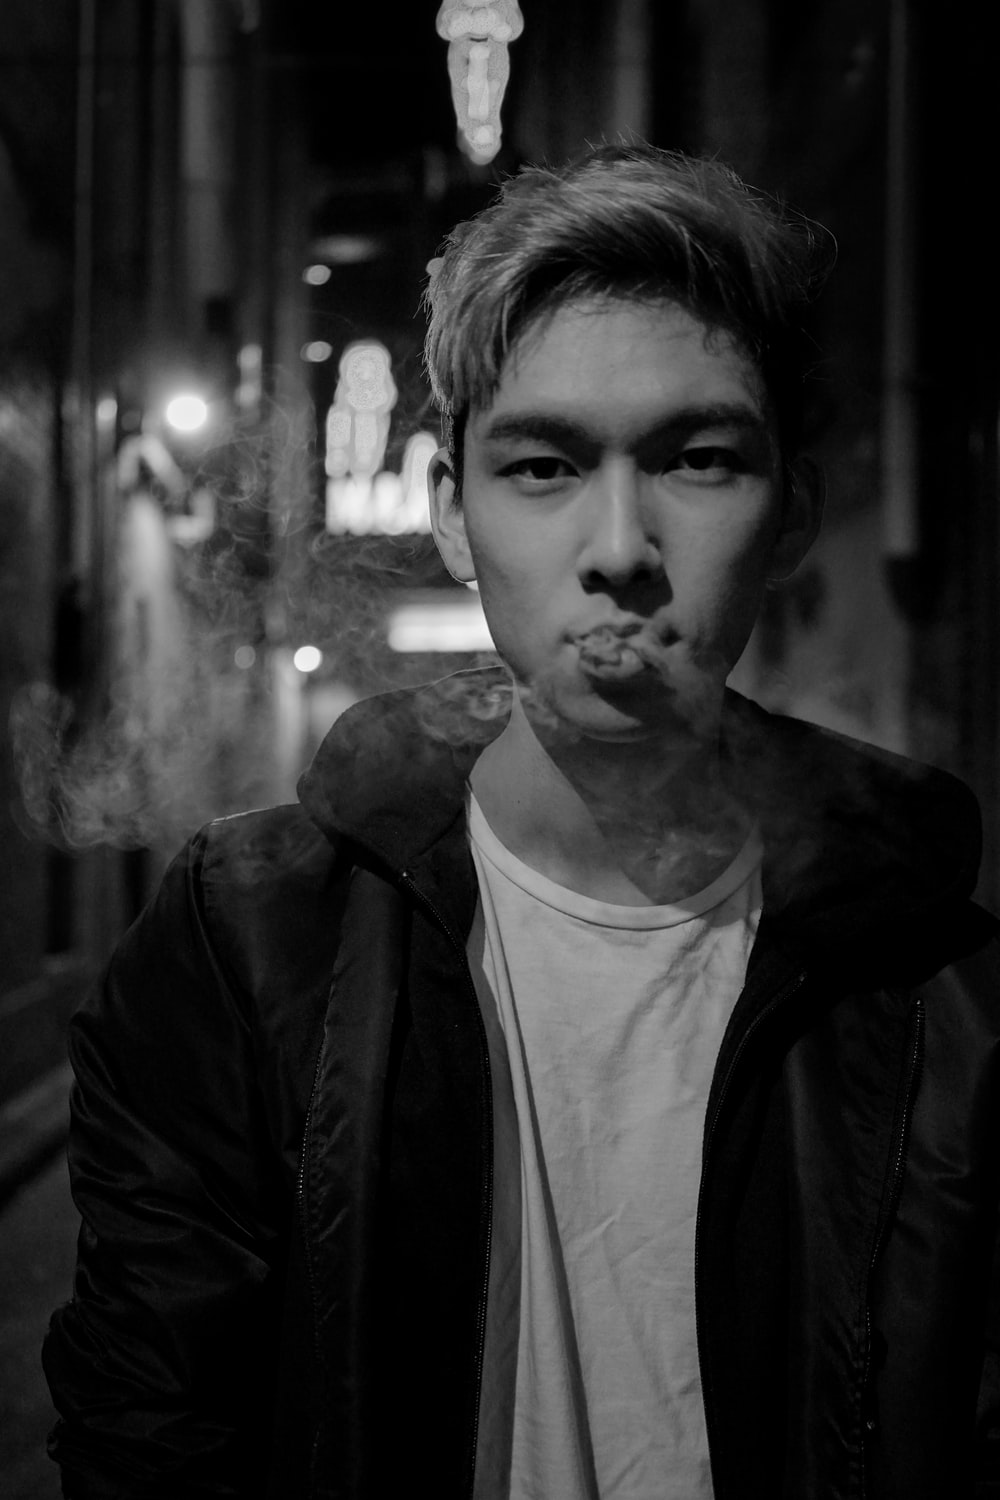 man in black jacket and white top smoking cigarette